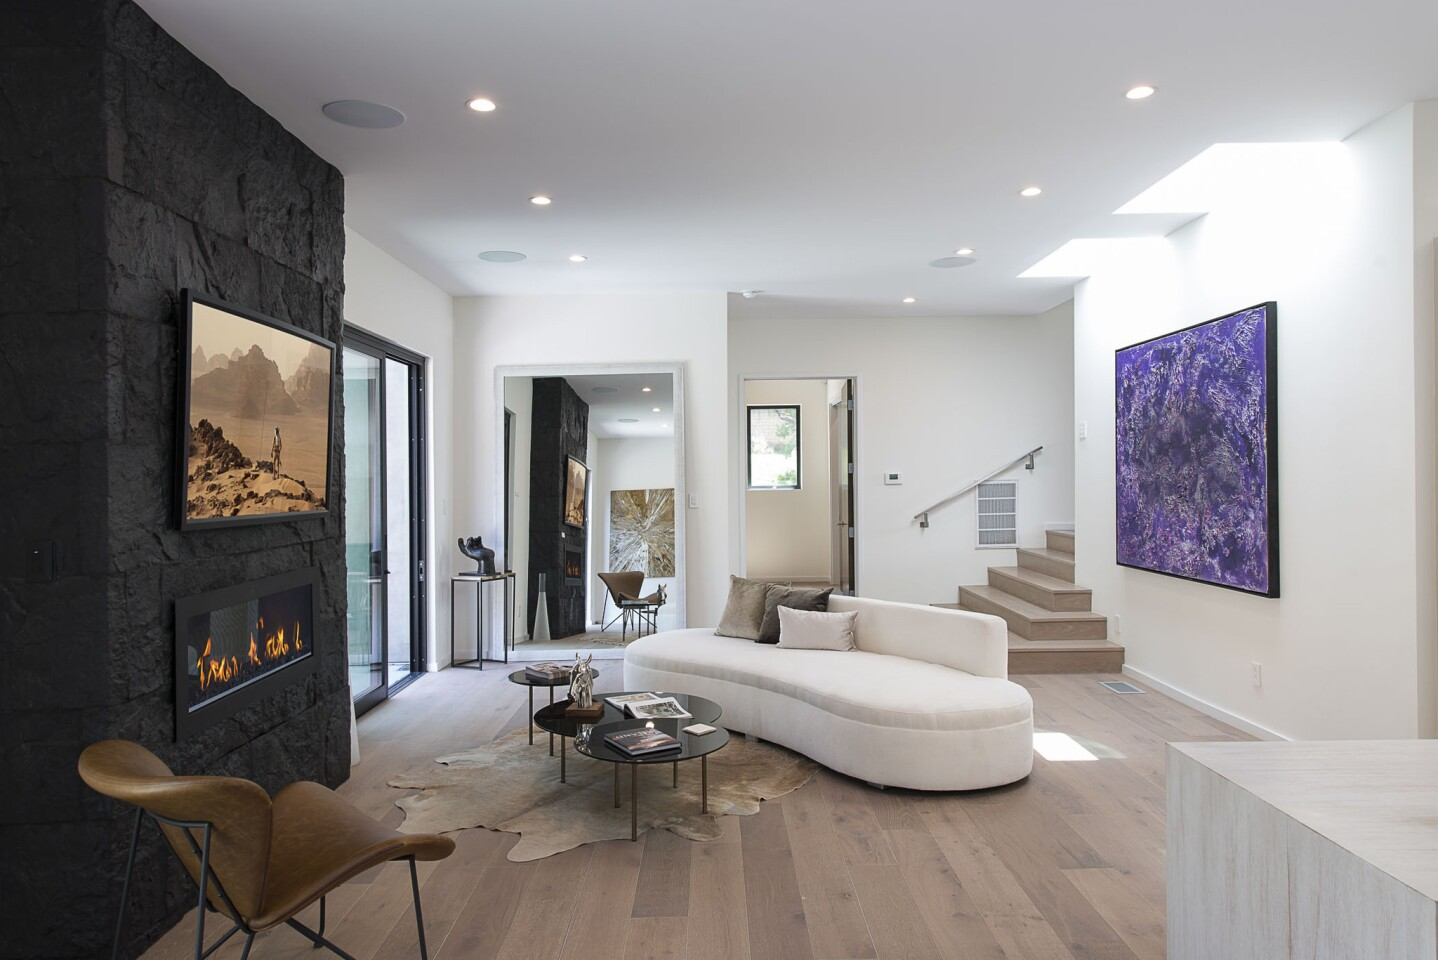 Home of the Day: Cool and contemporary in the hills of Studio City